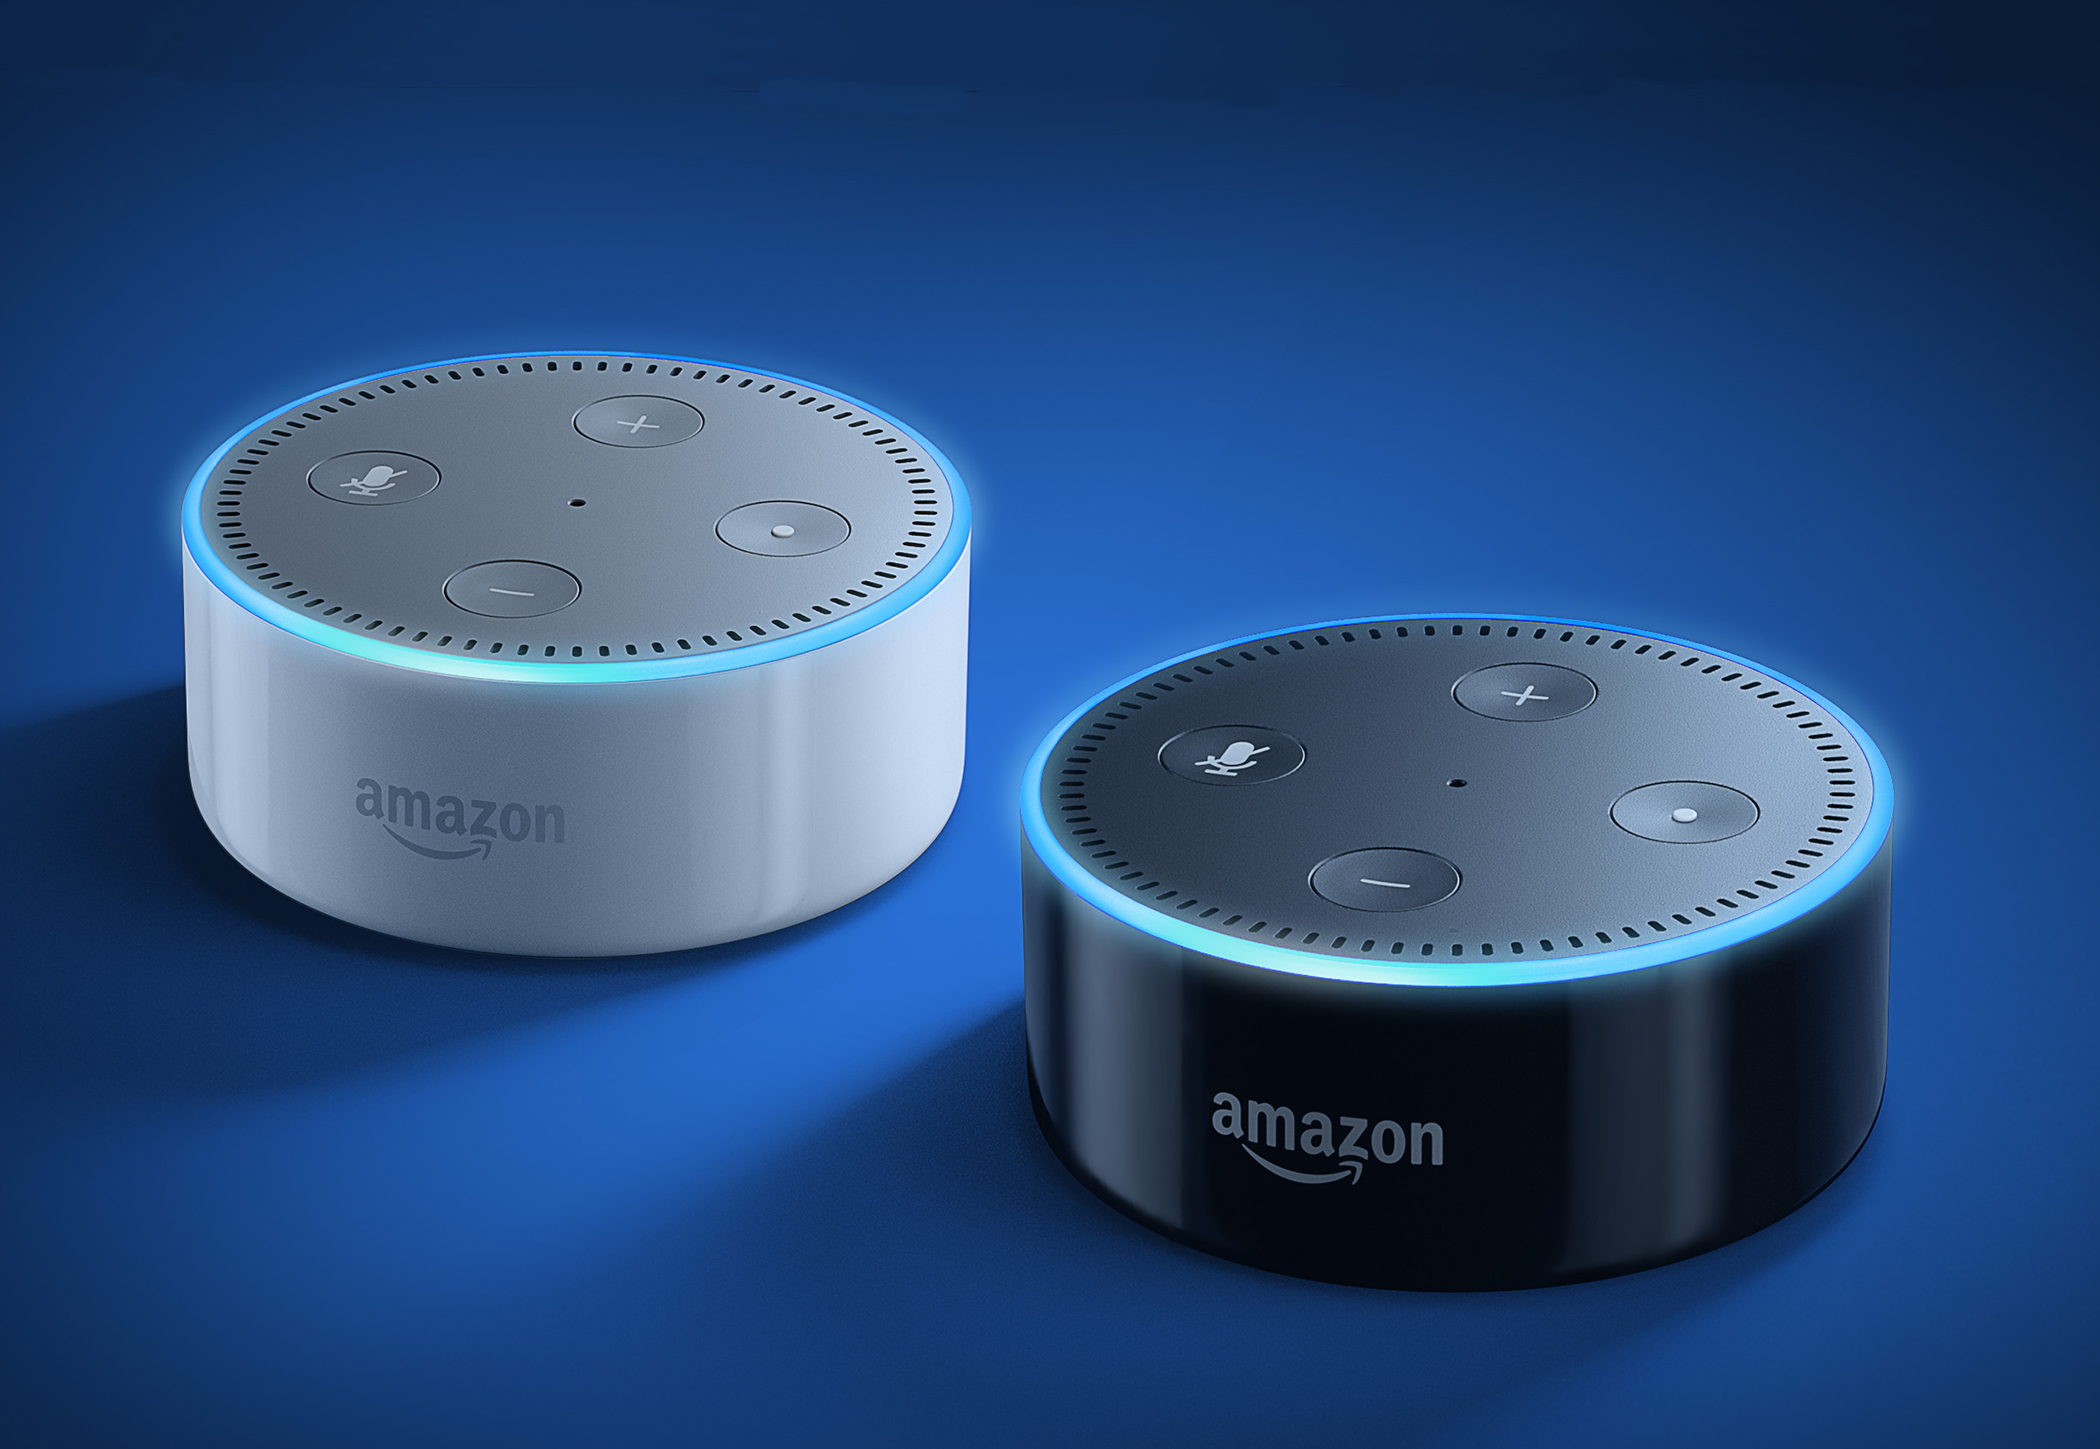 Amazon Echo Dot, in white and black